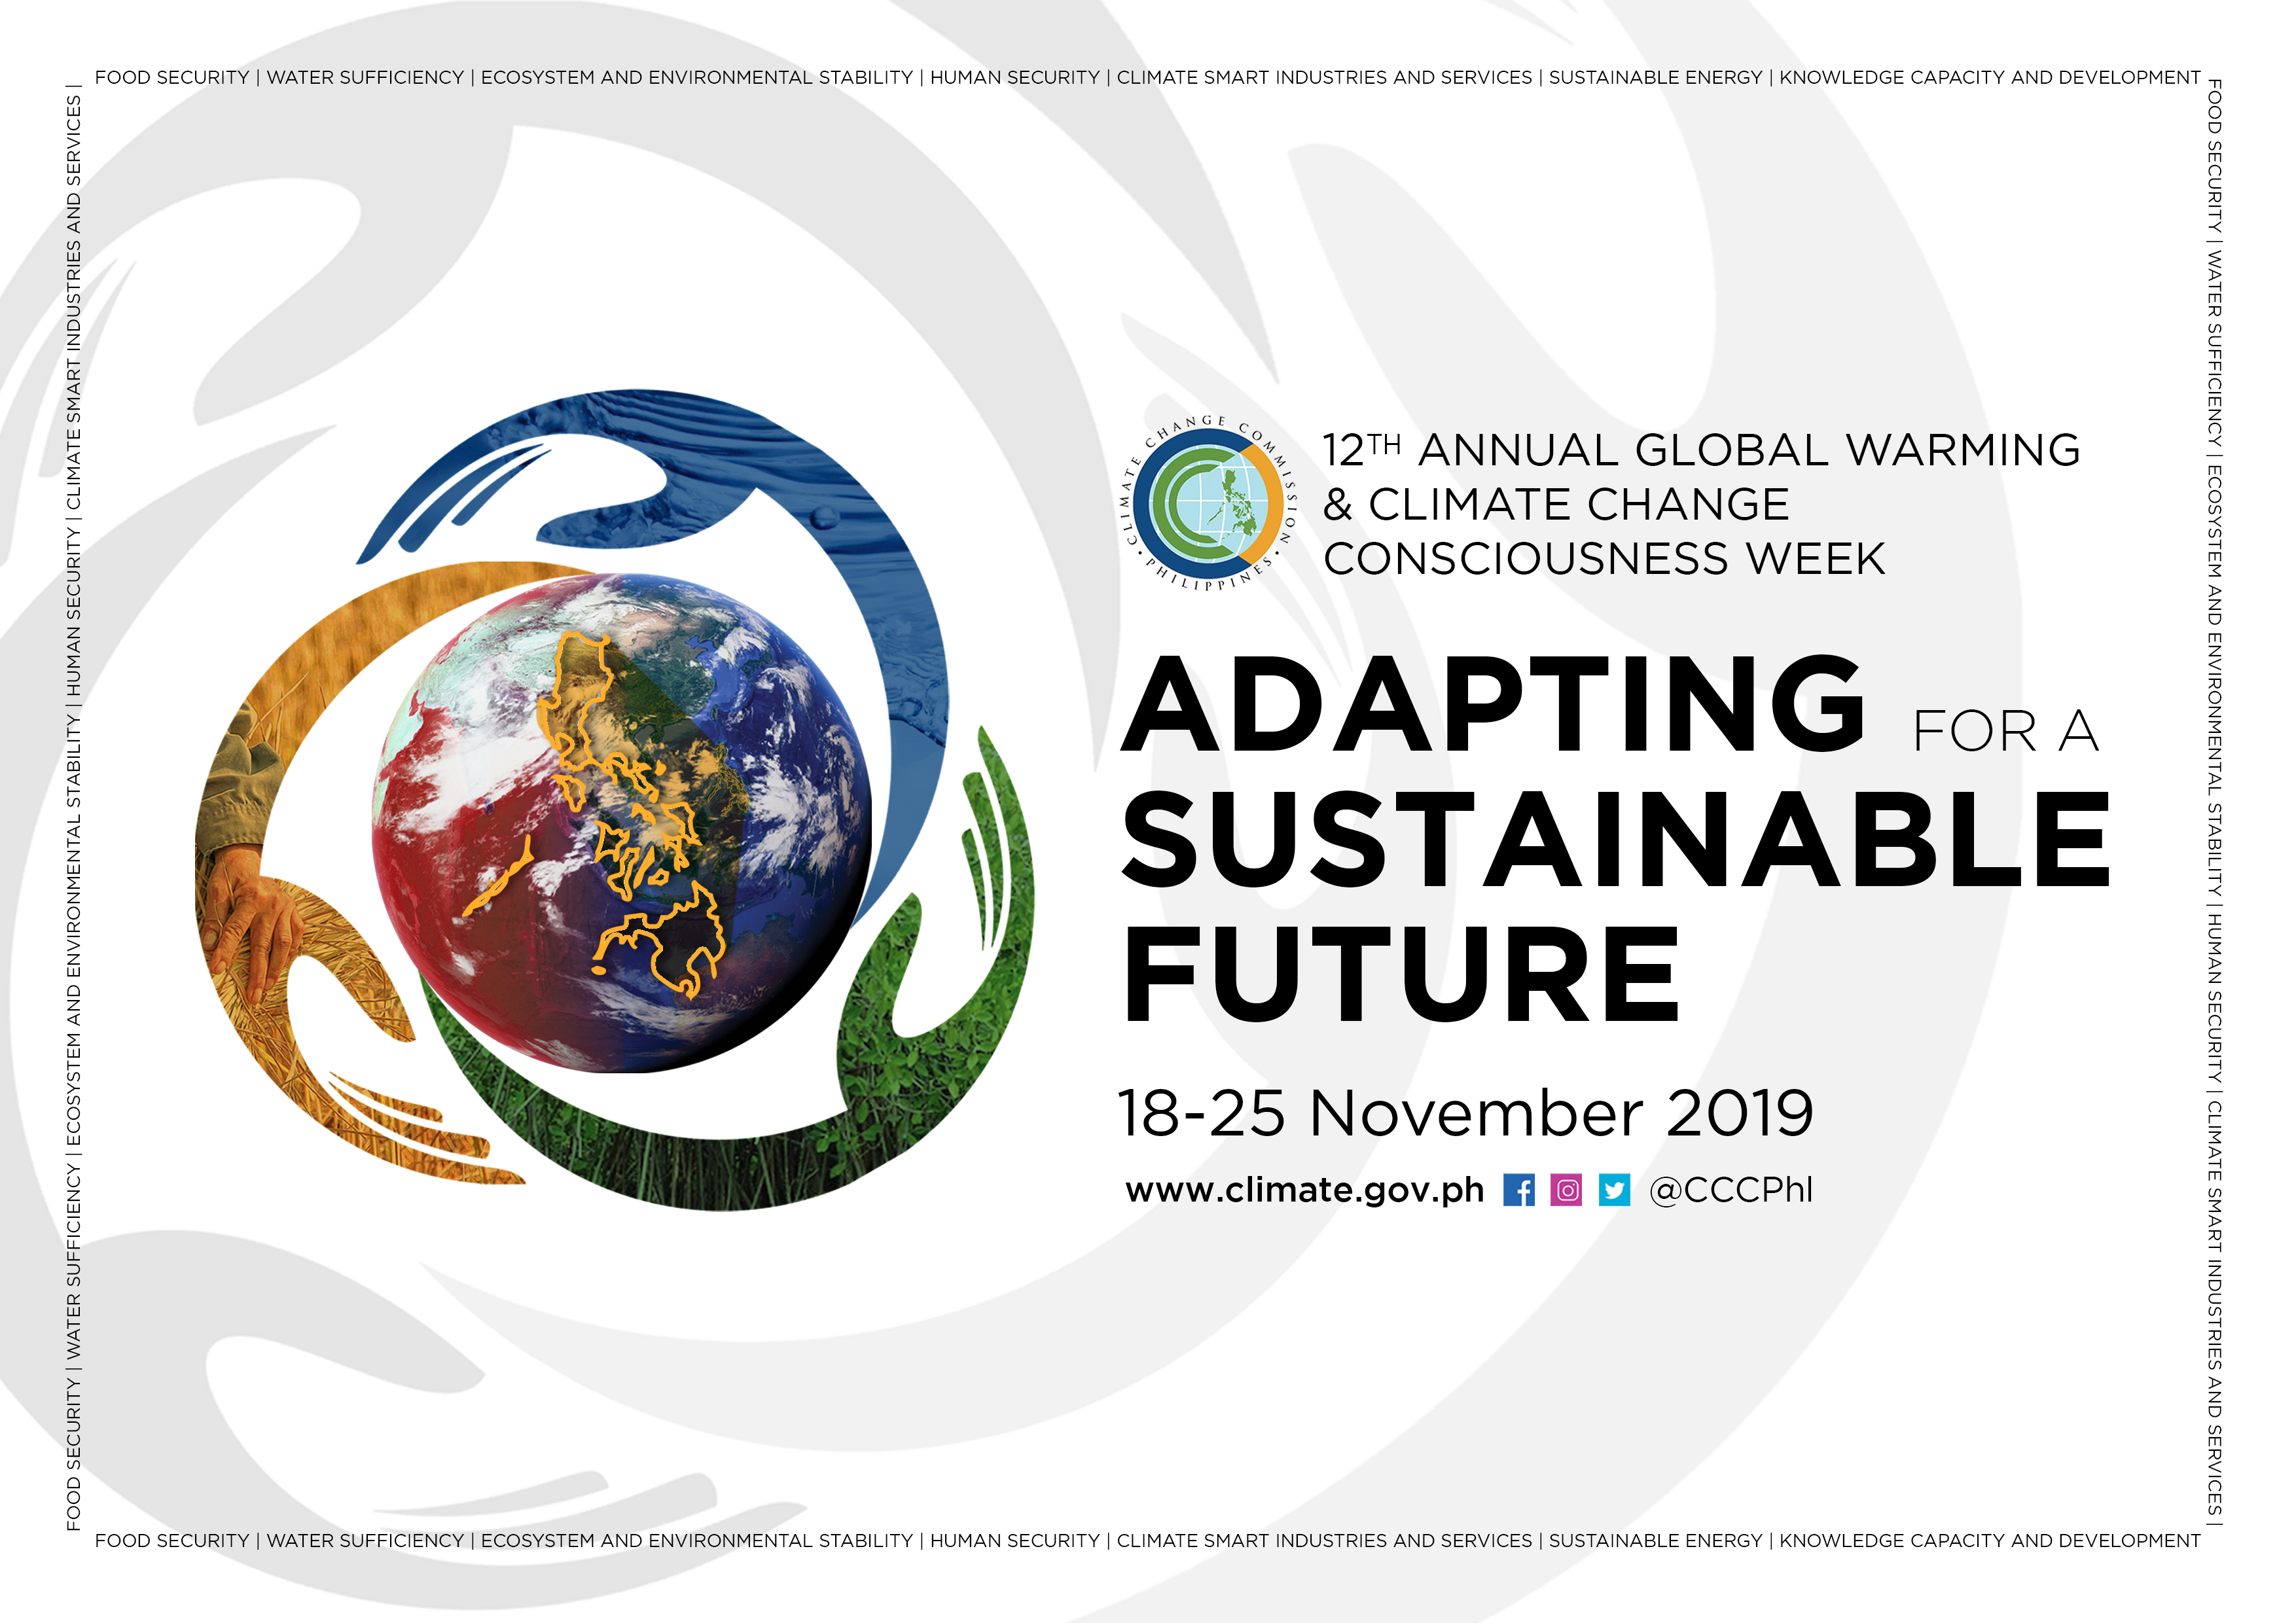 Climate Change Consciousness Week 2019: Adapting for a Sustainable Future